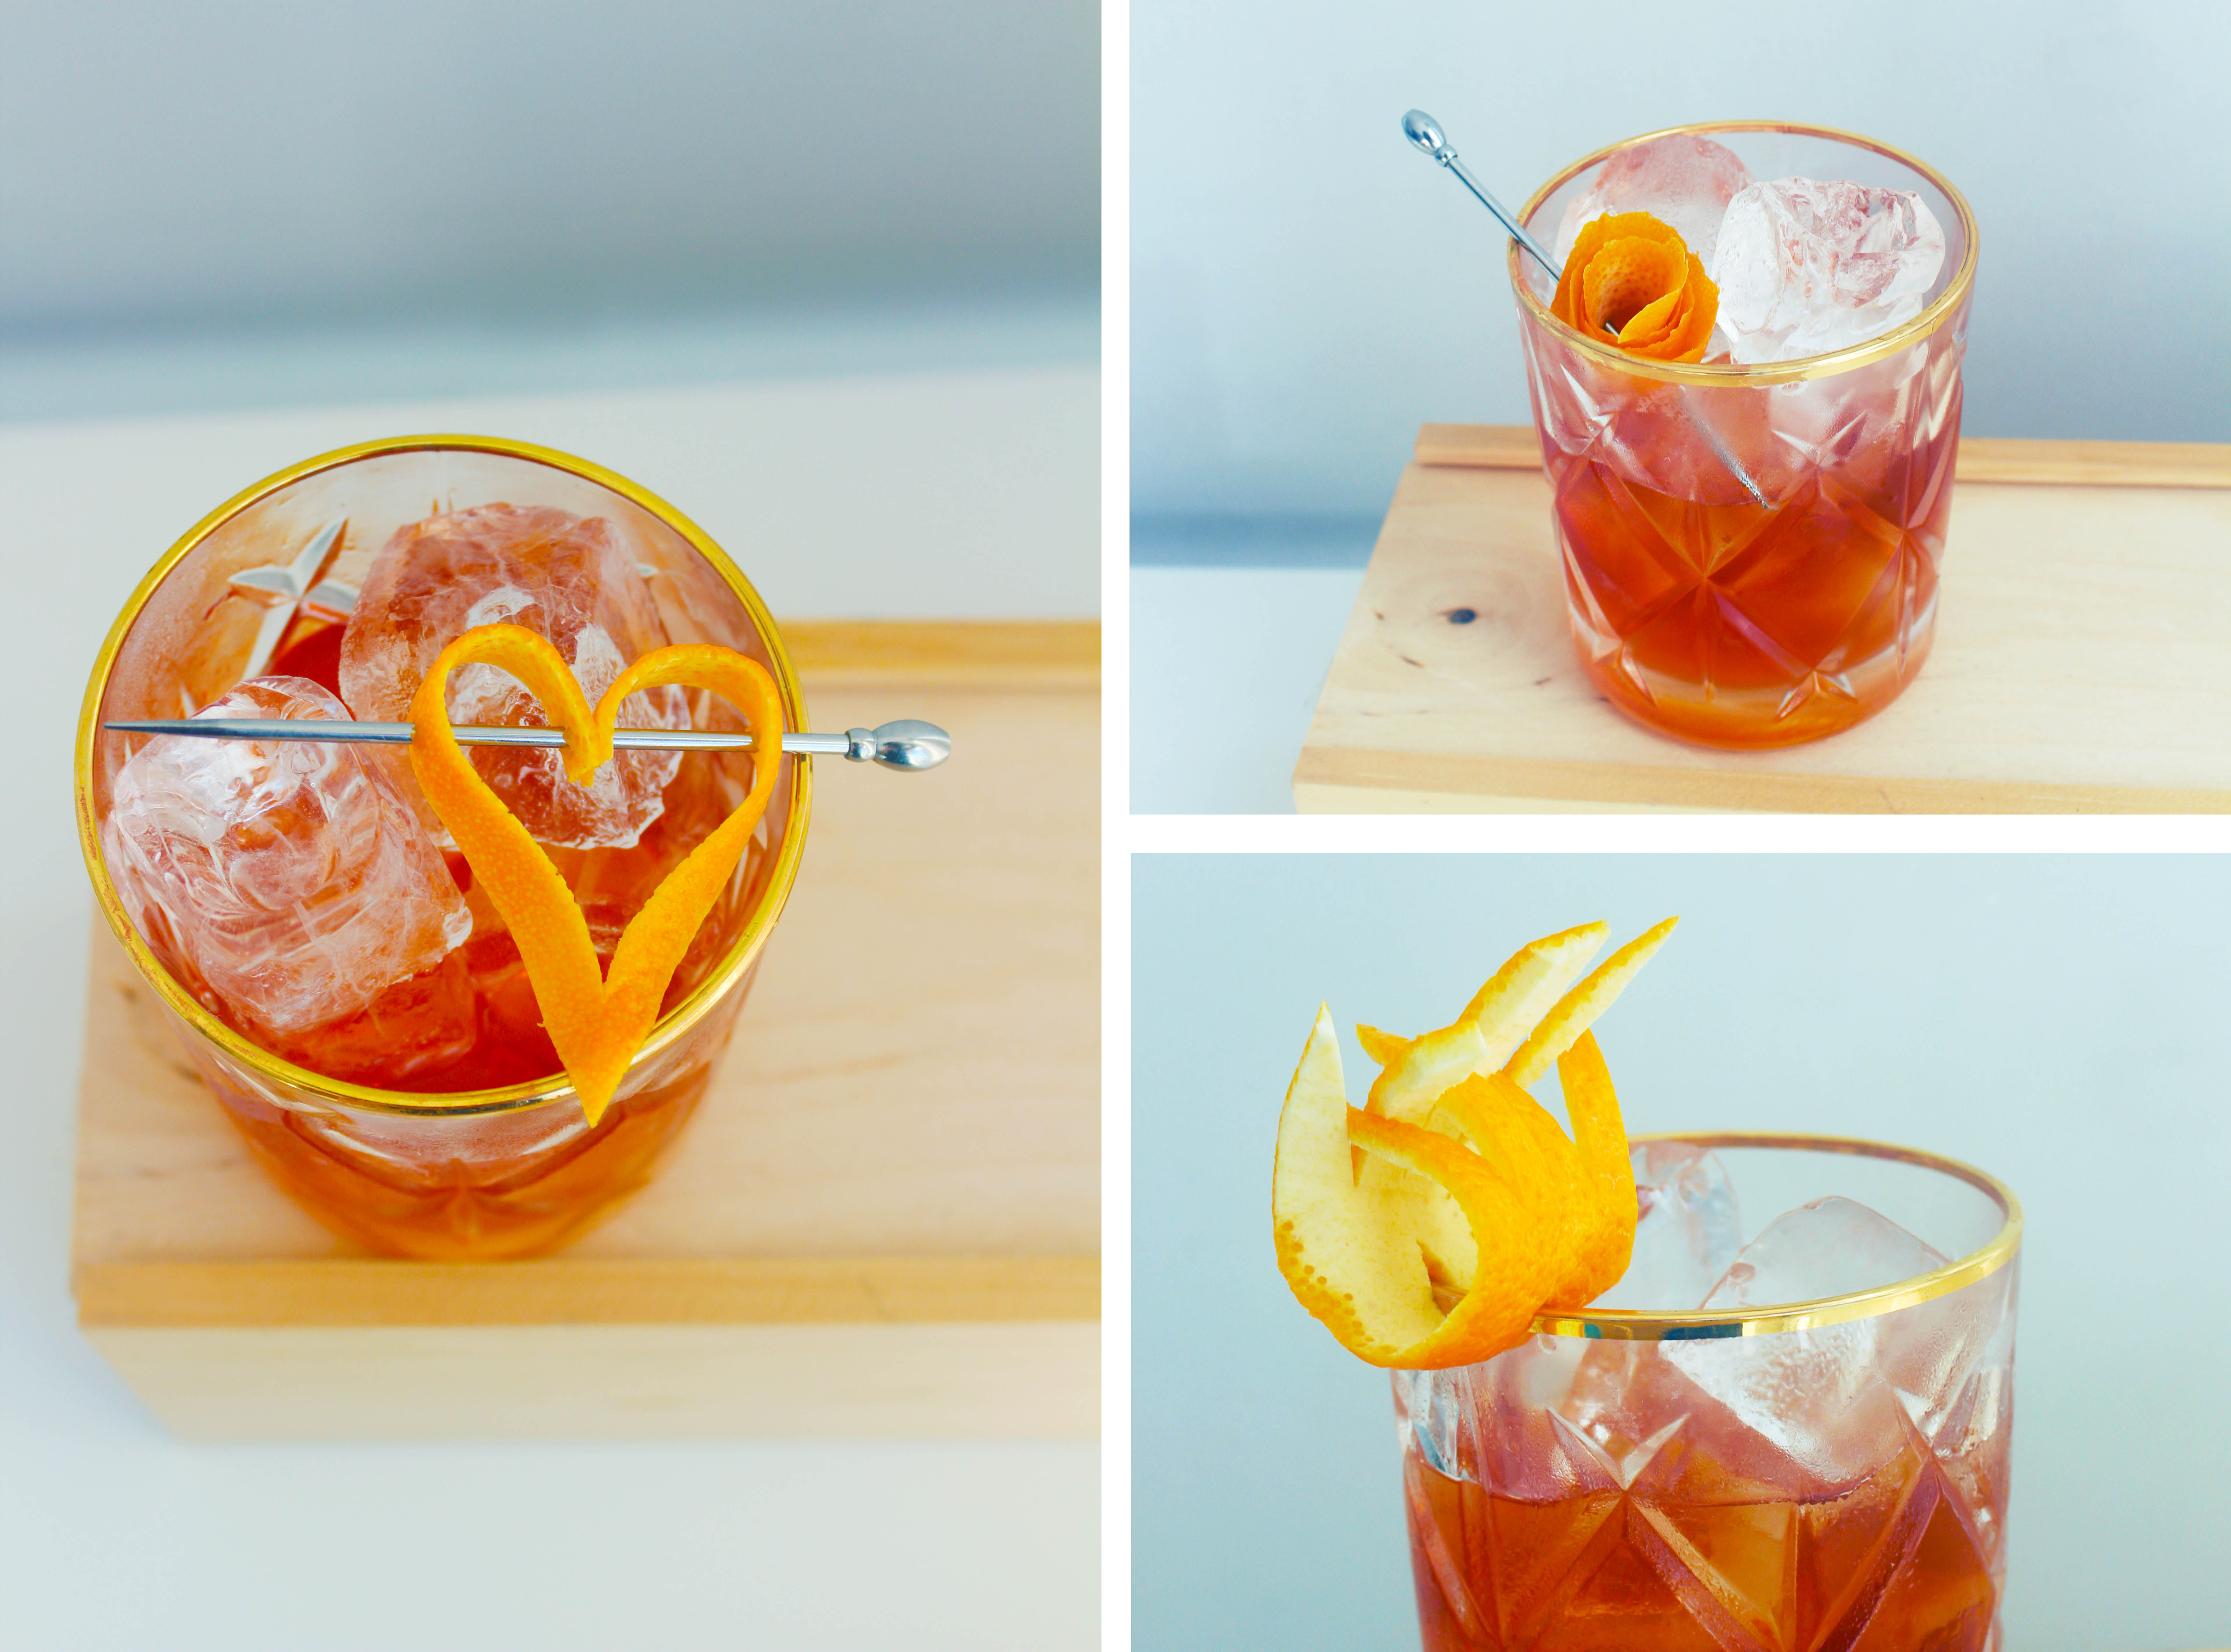 Cocktails 101: Upping Your Garnish Game